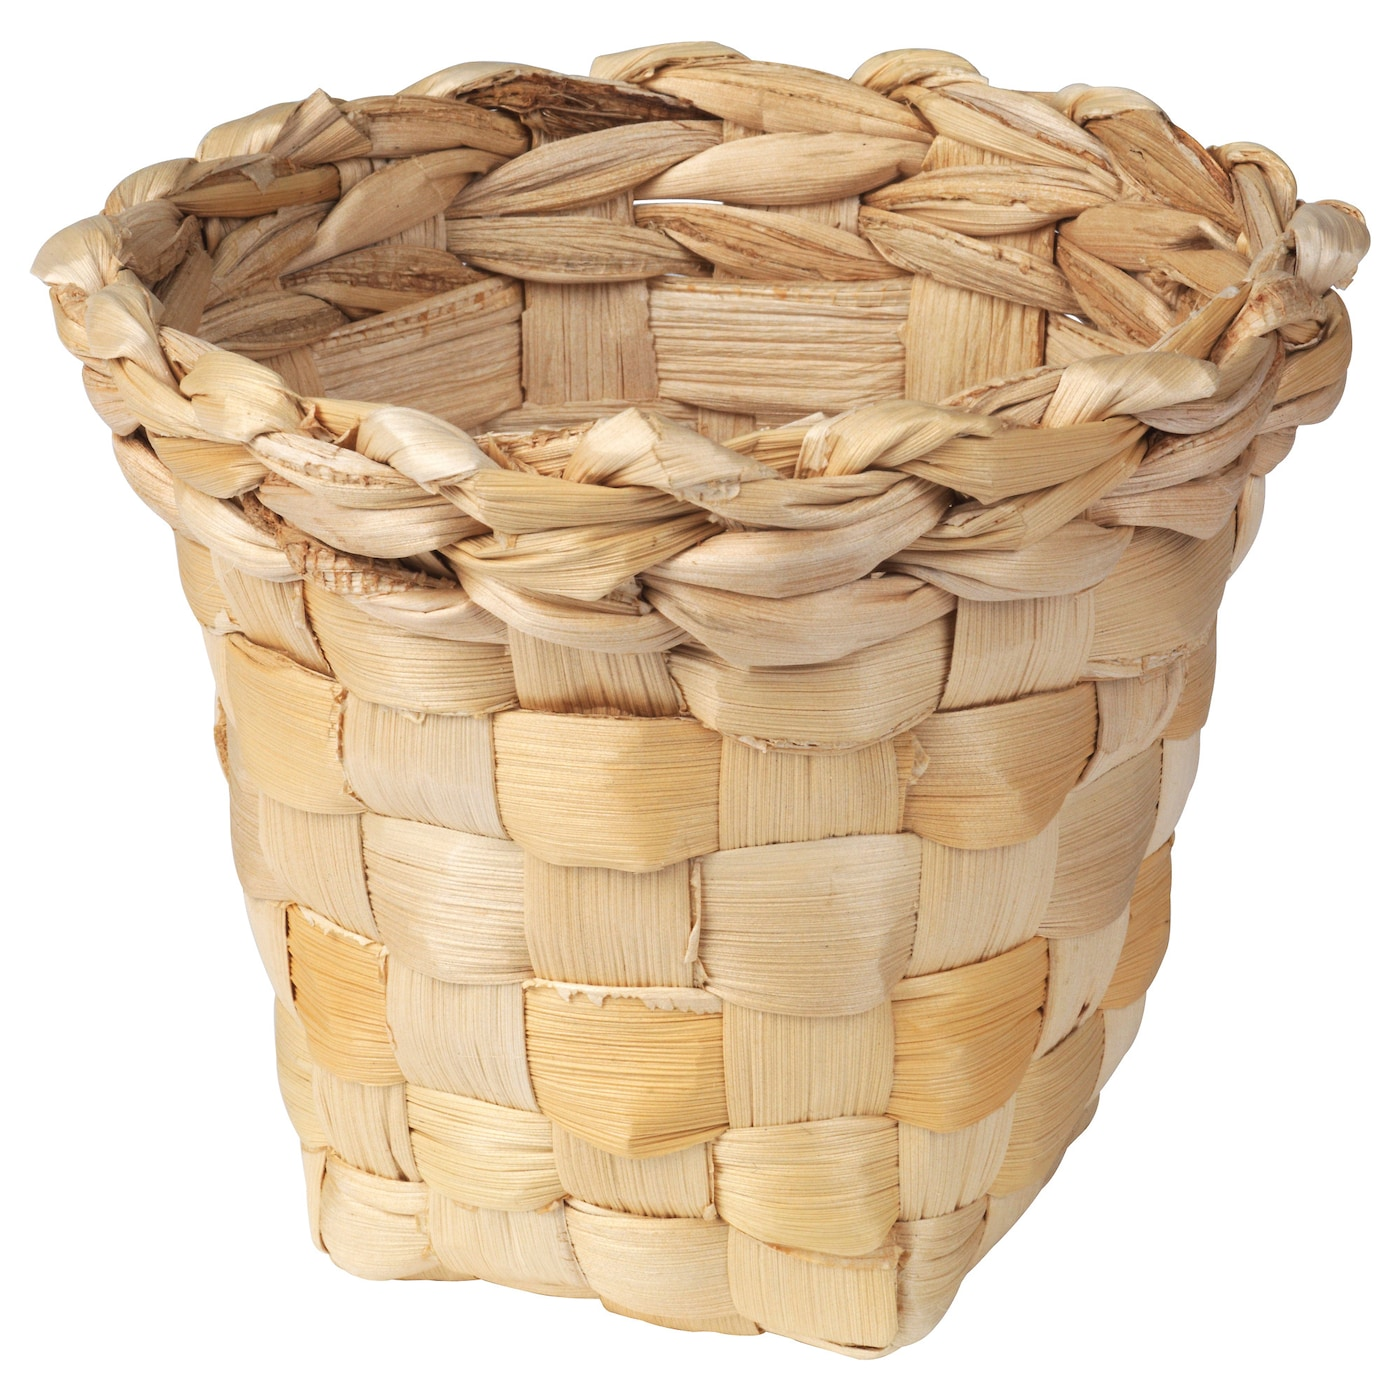 IKEA HEMGJORD basket This handmade product is made by a social entrepreneur in Karnataka, Indien.